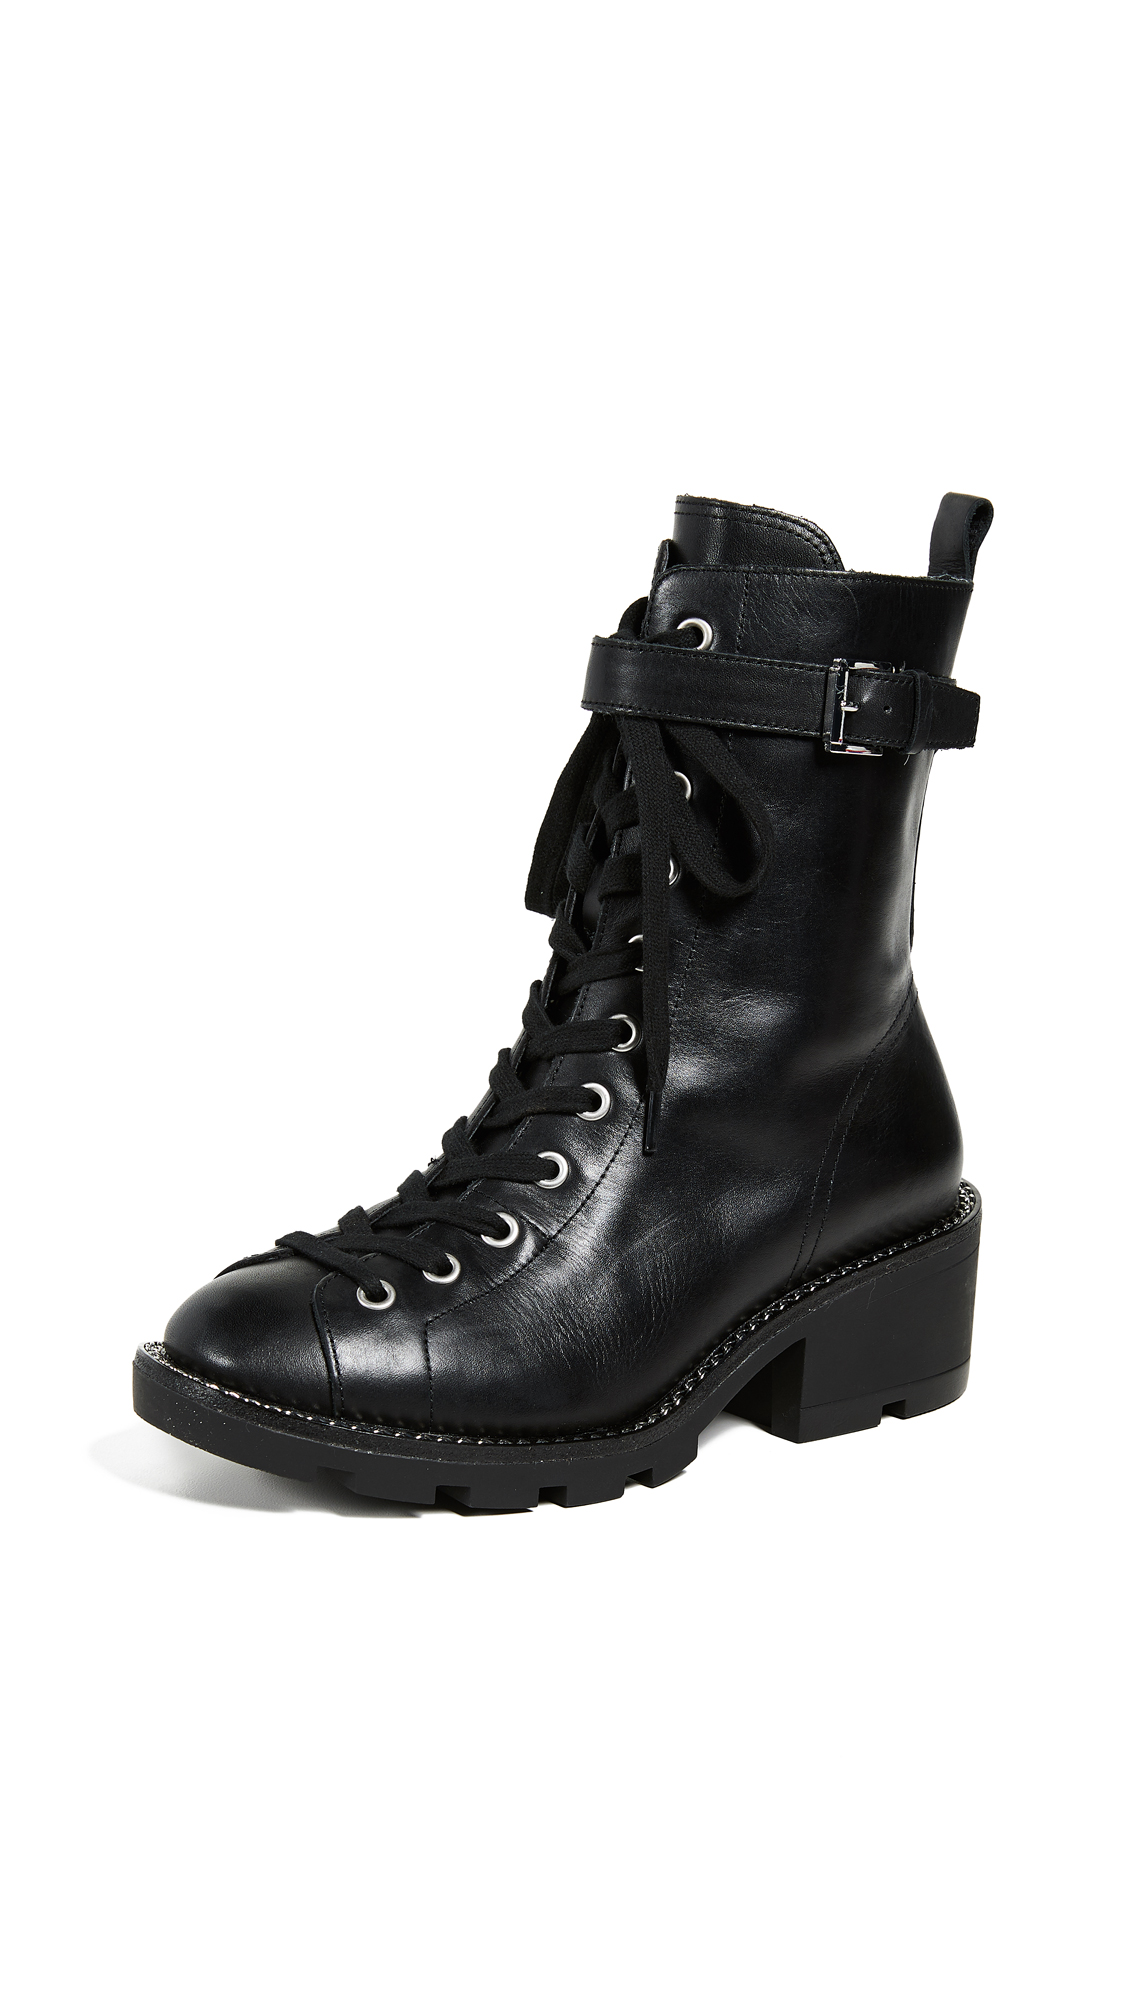 Photo of KENDALL + KYLIE Prime Combat Boots - buy KENDALL + KYLIE footwear online